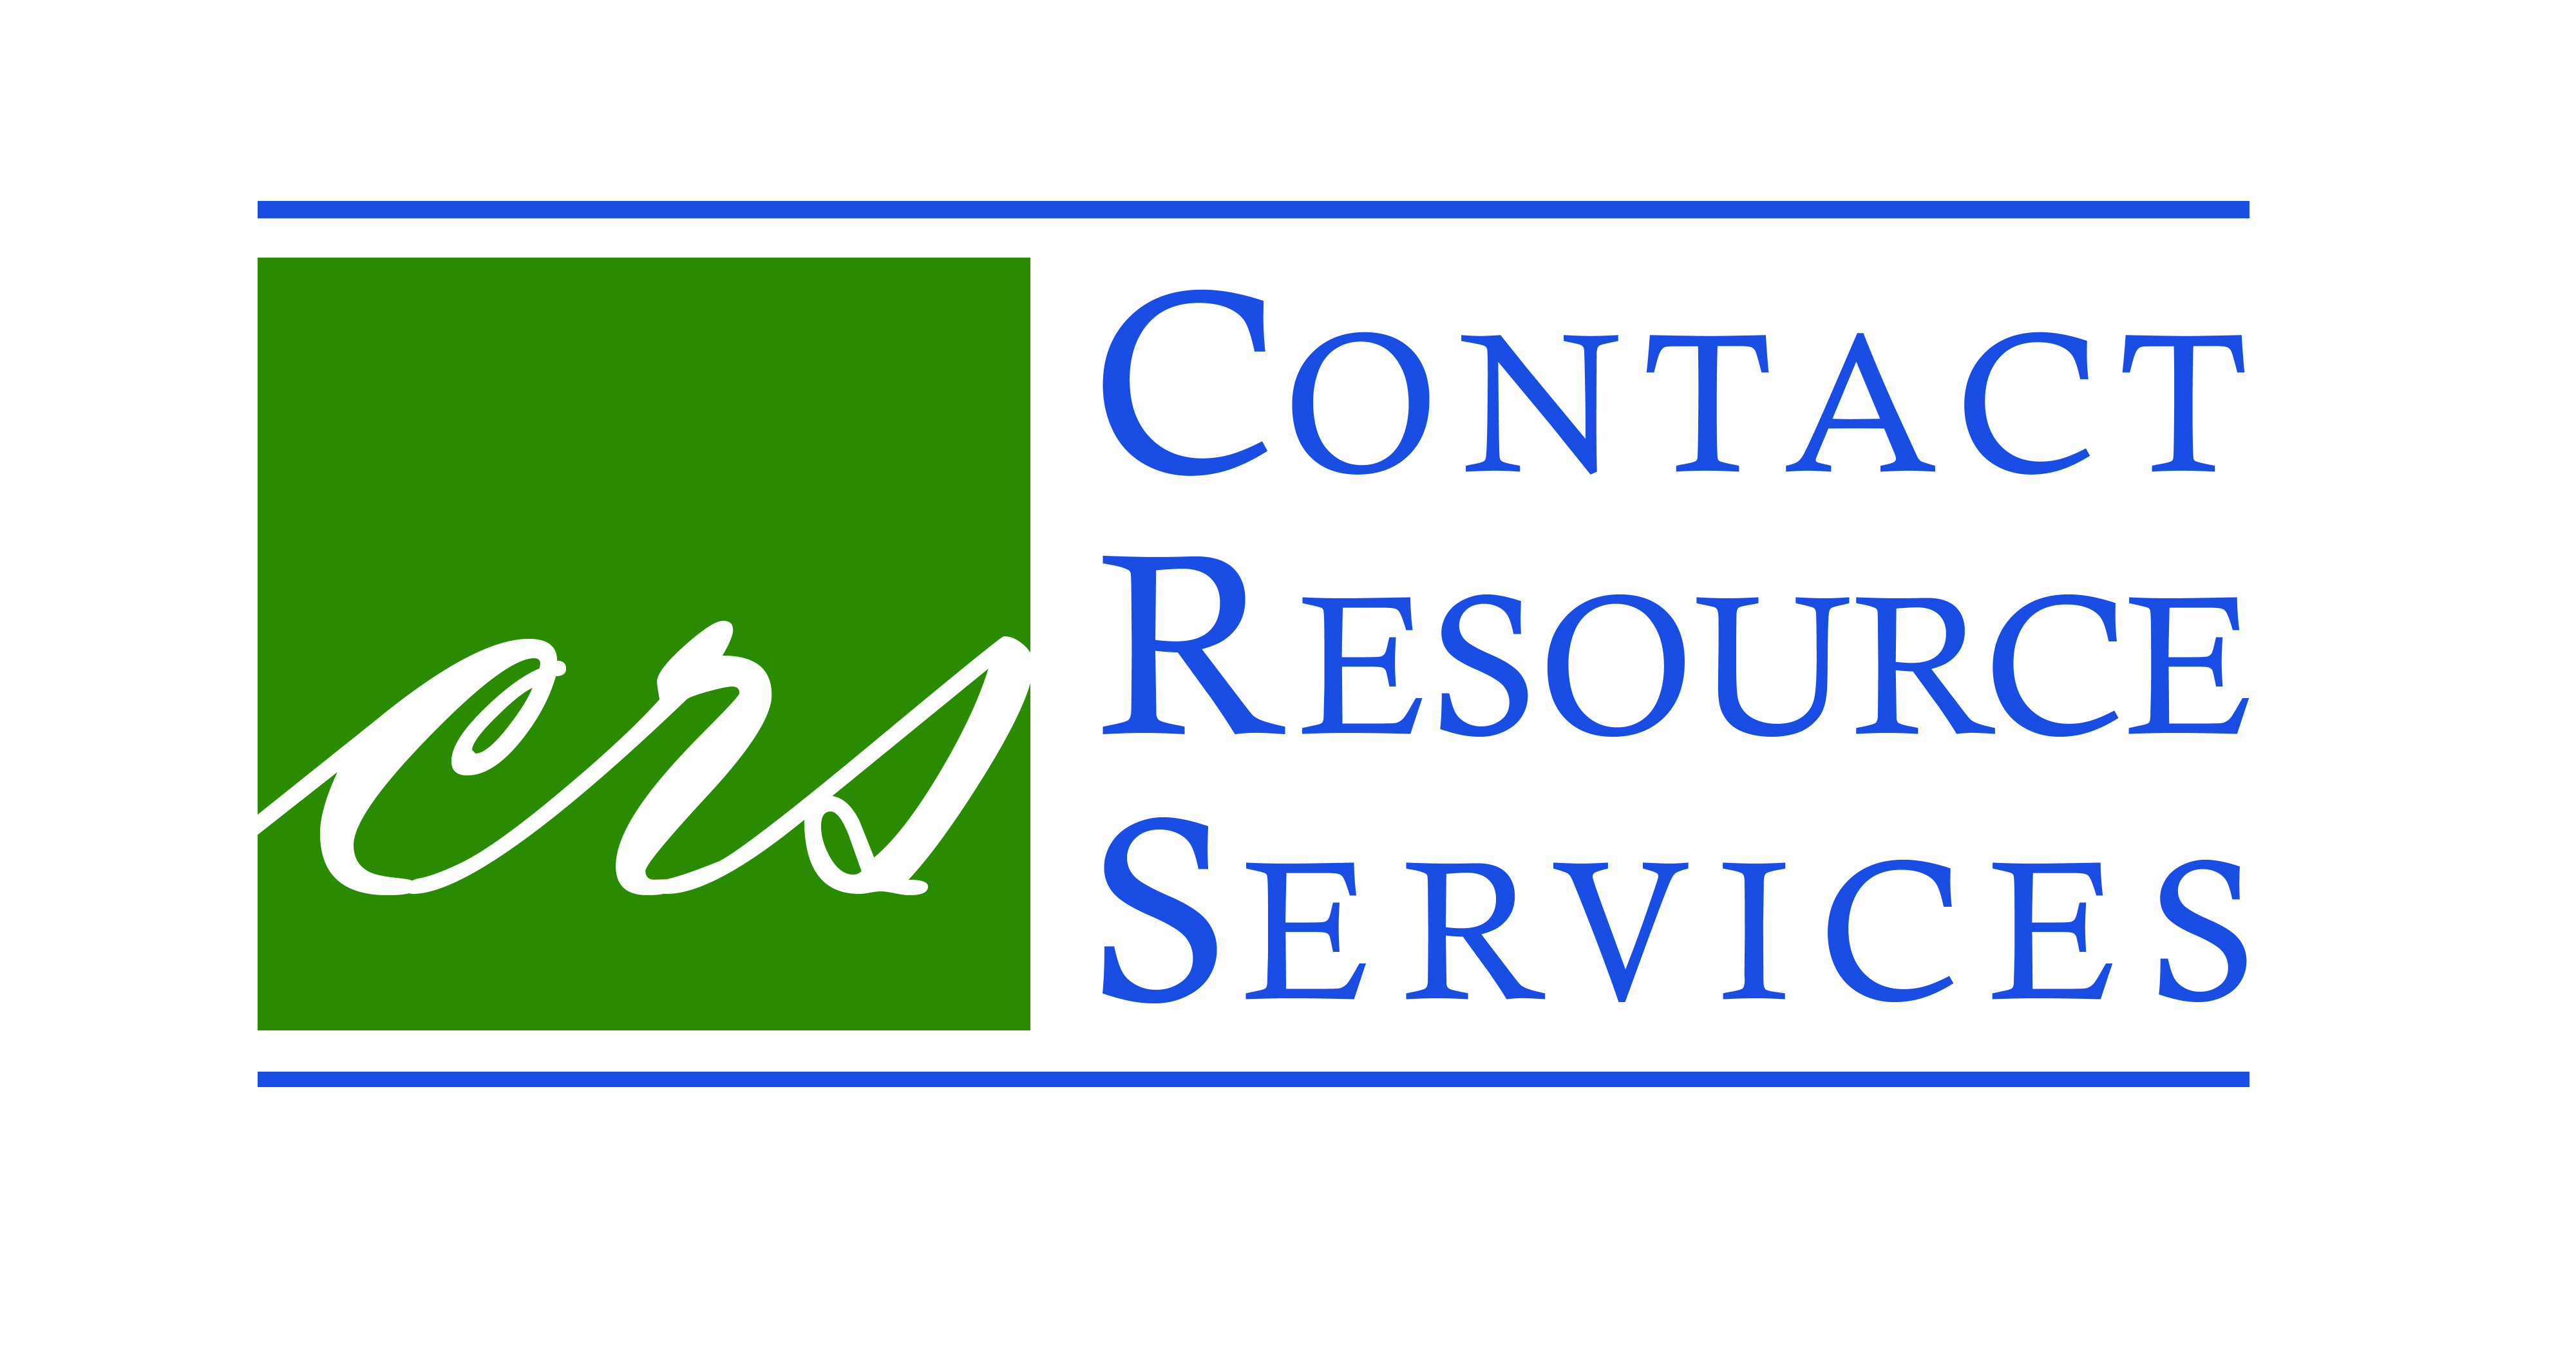 Contact Resource Services